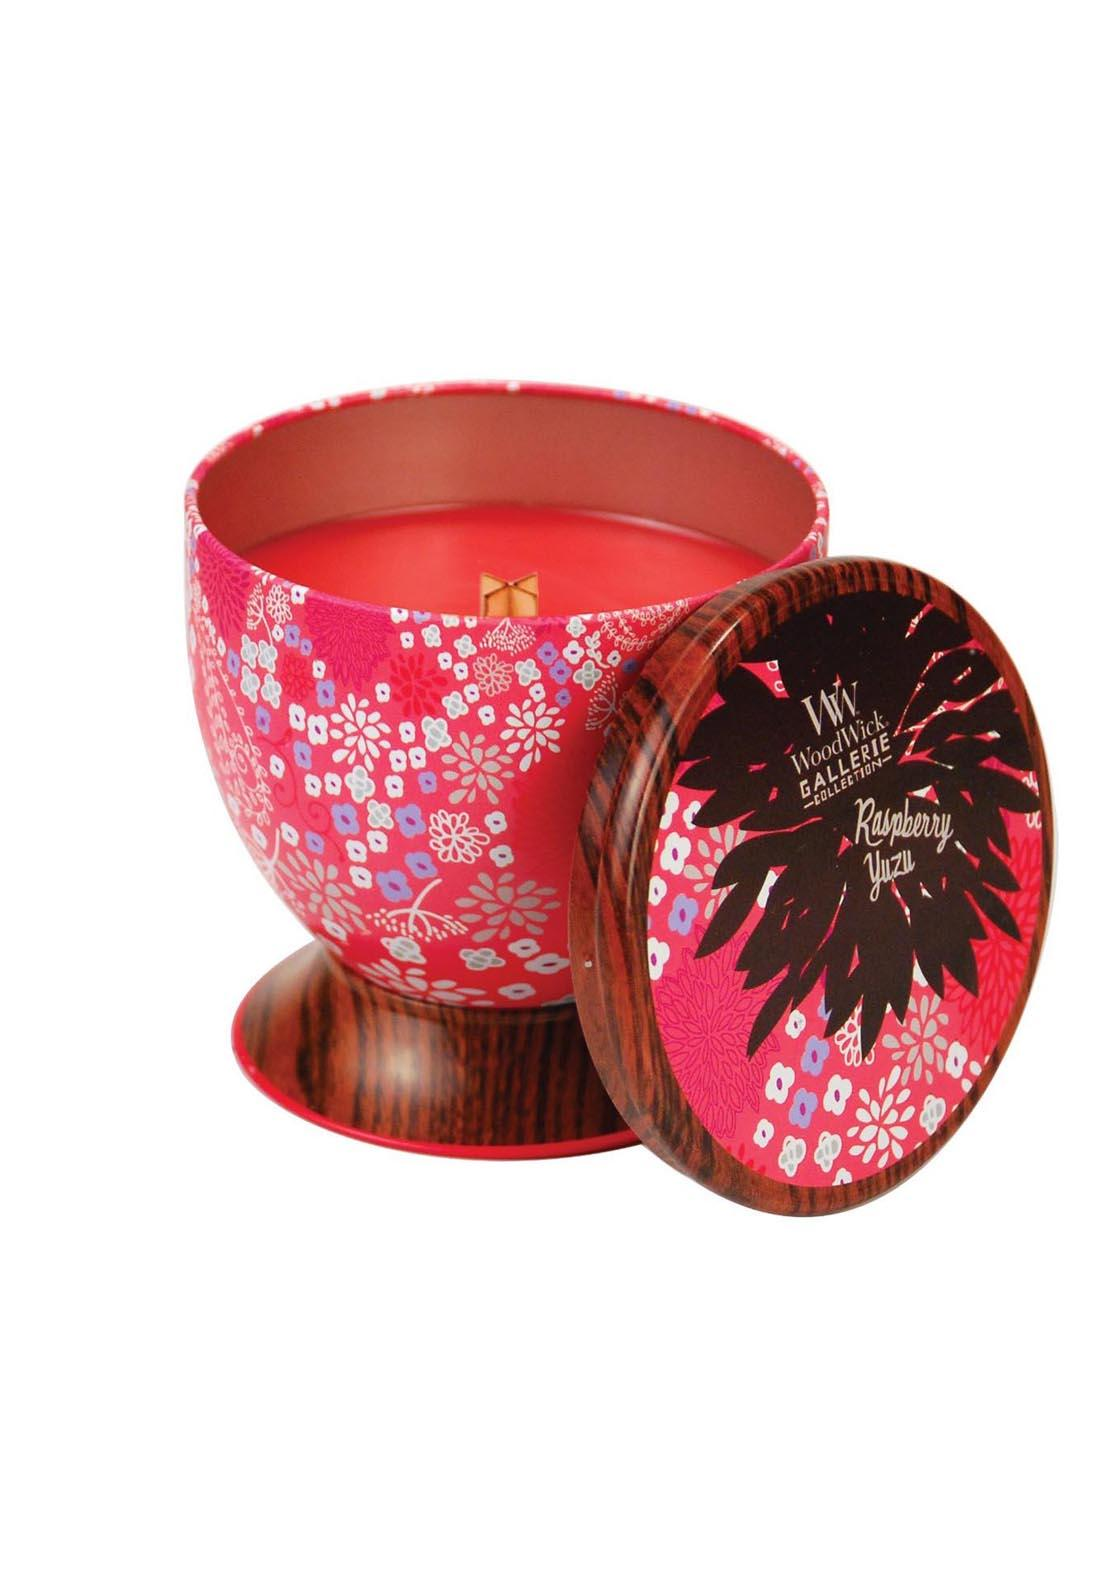 Woodwick Gallerie Collection, Scented Candle, Raspberry Yuzu